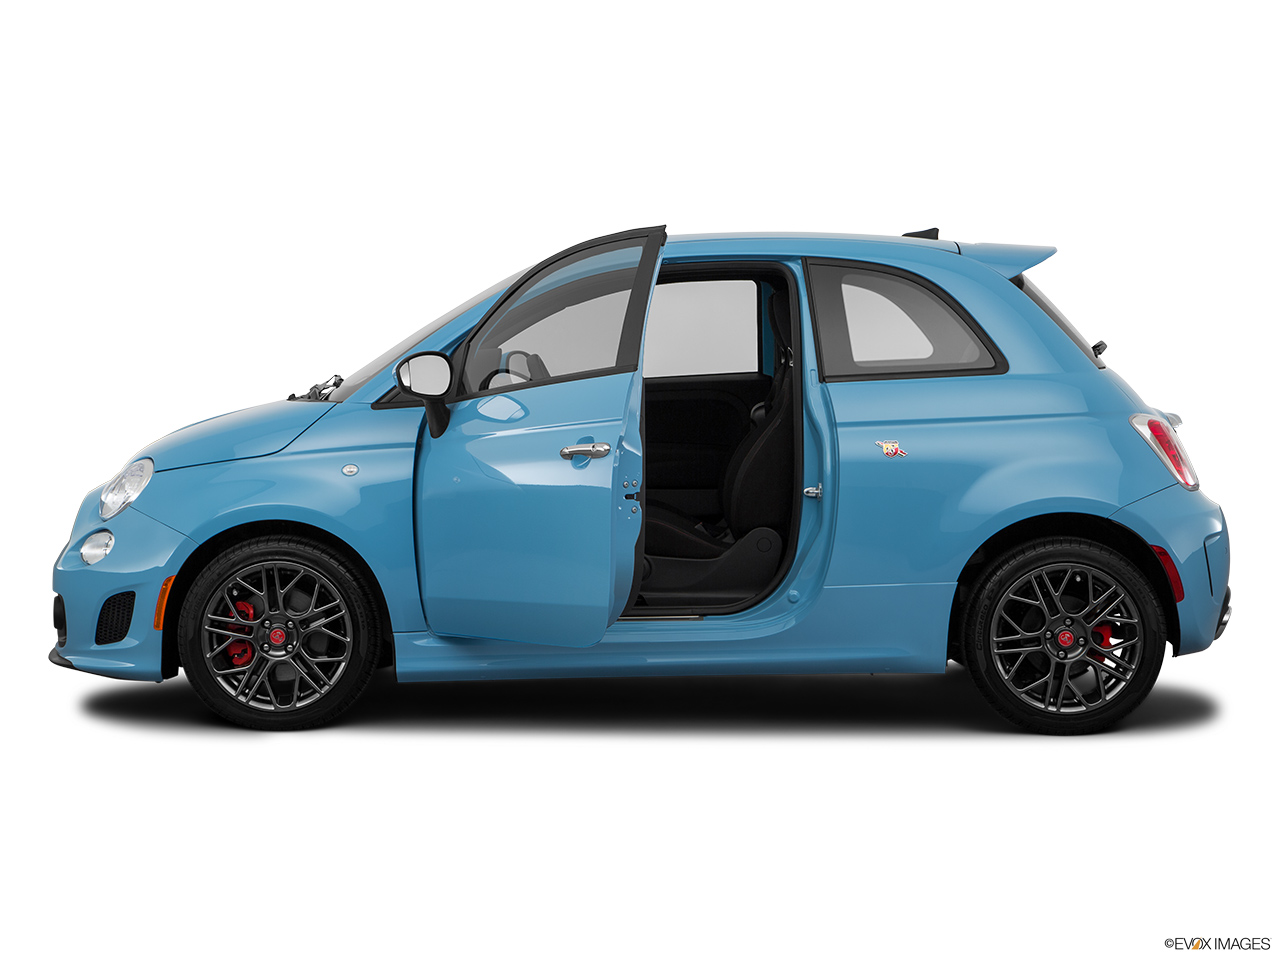 fiat 500 2018 abarth in qatar: new car prices, specs, reviews